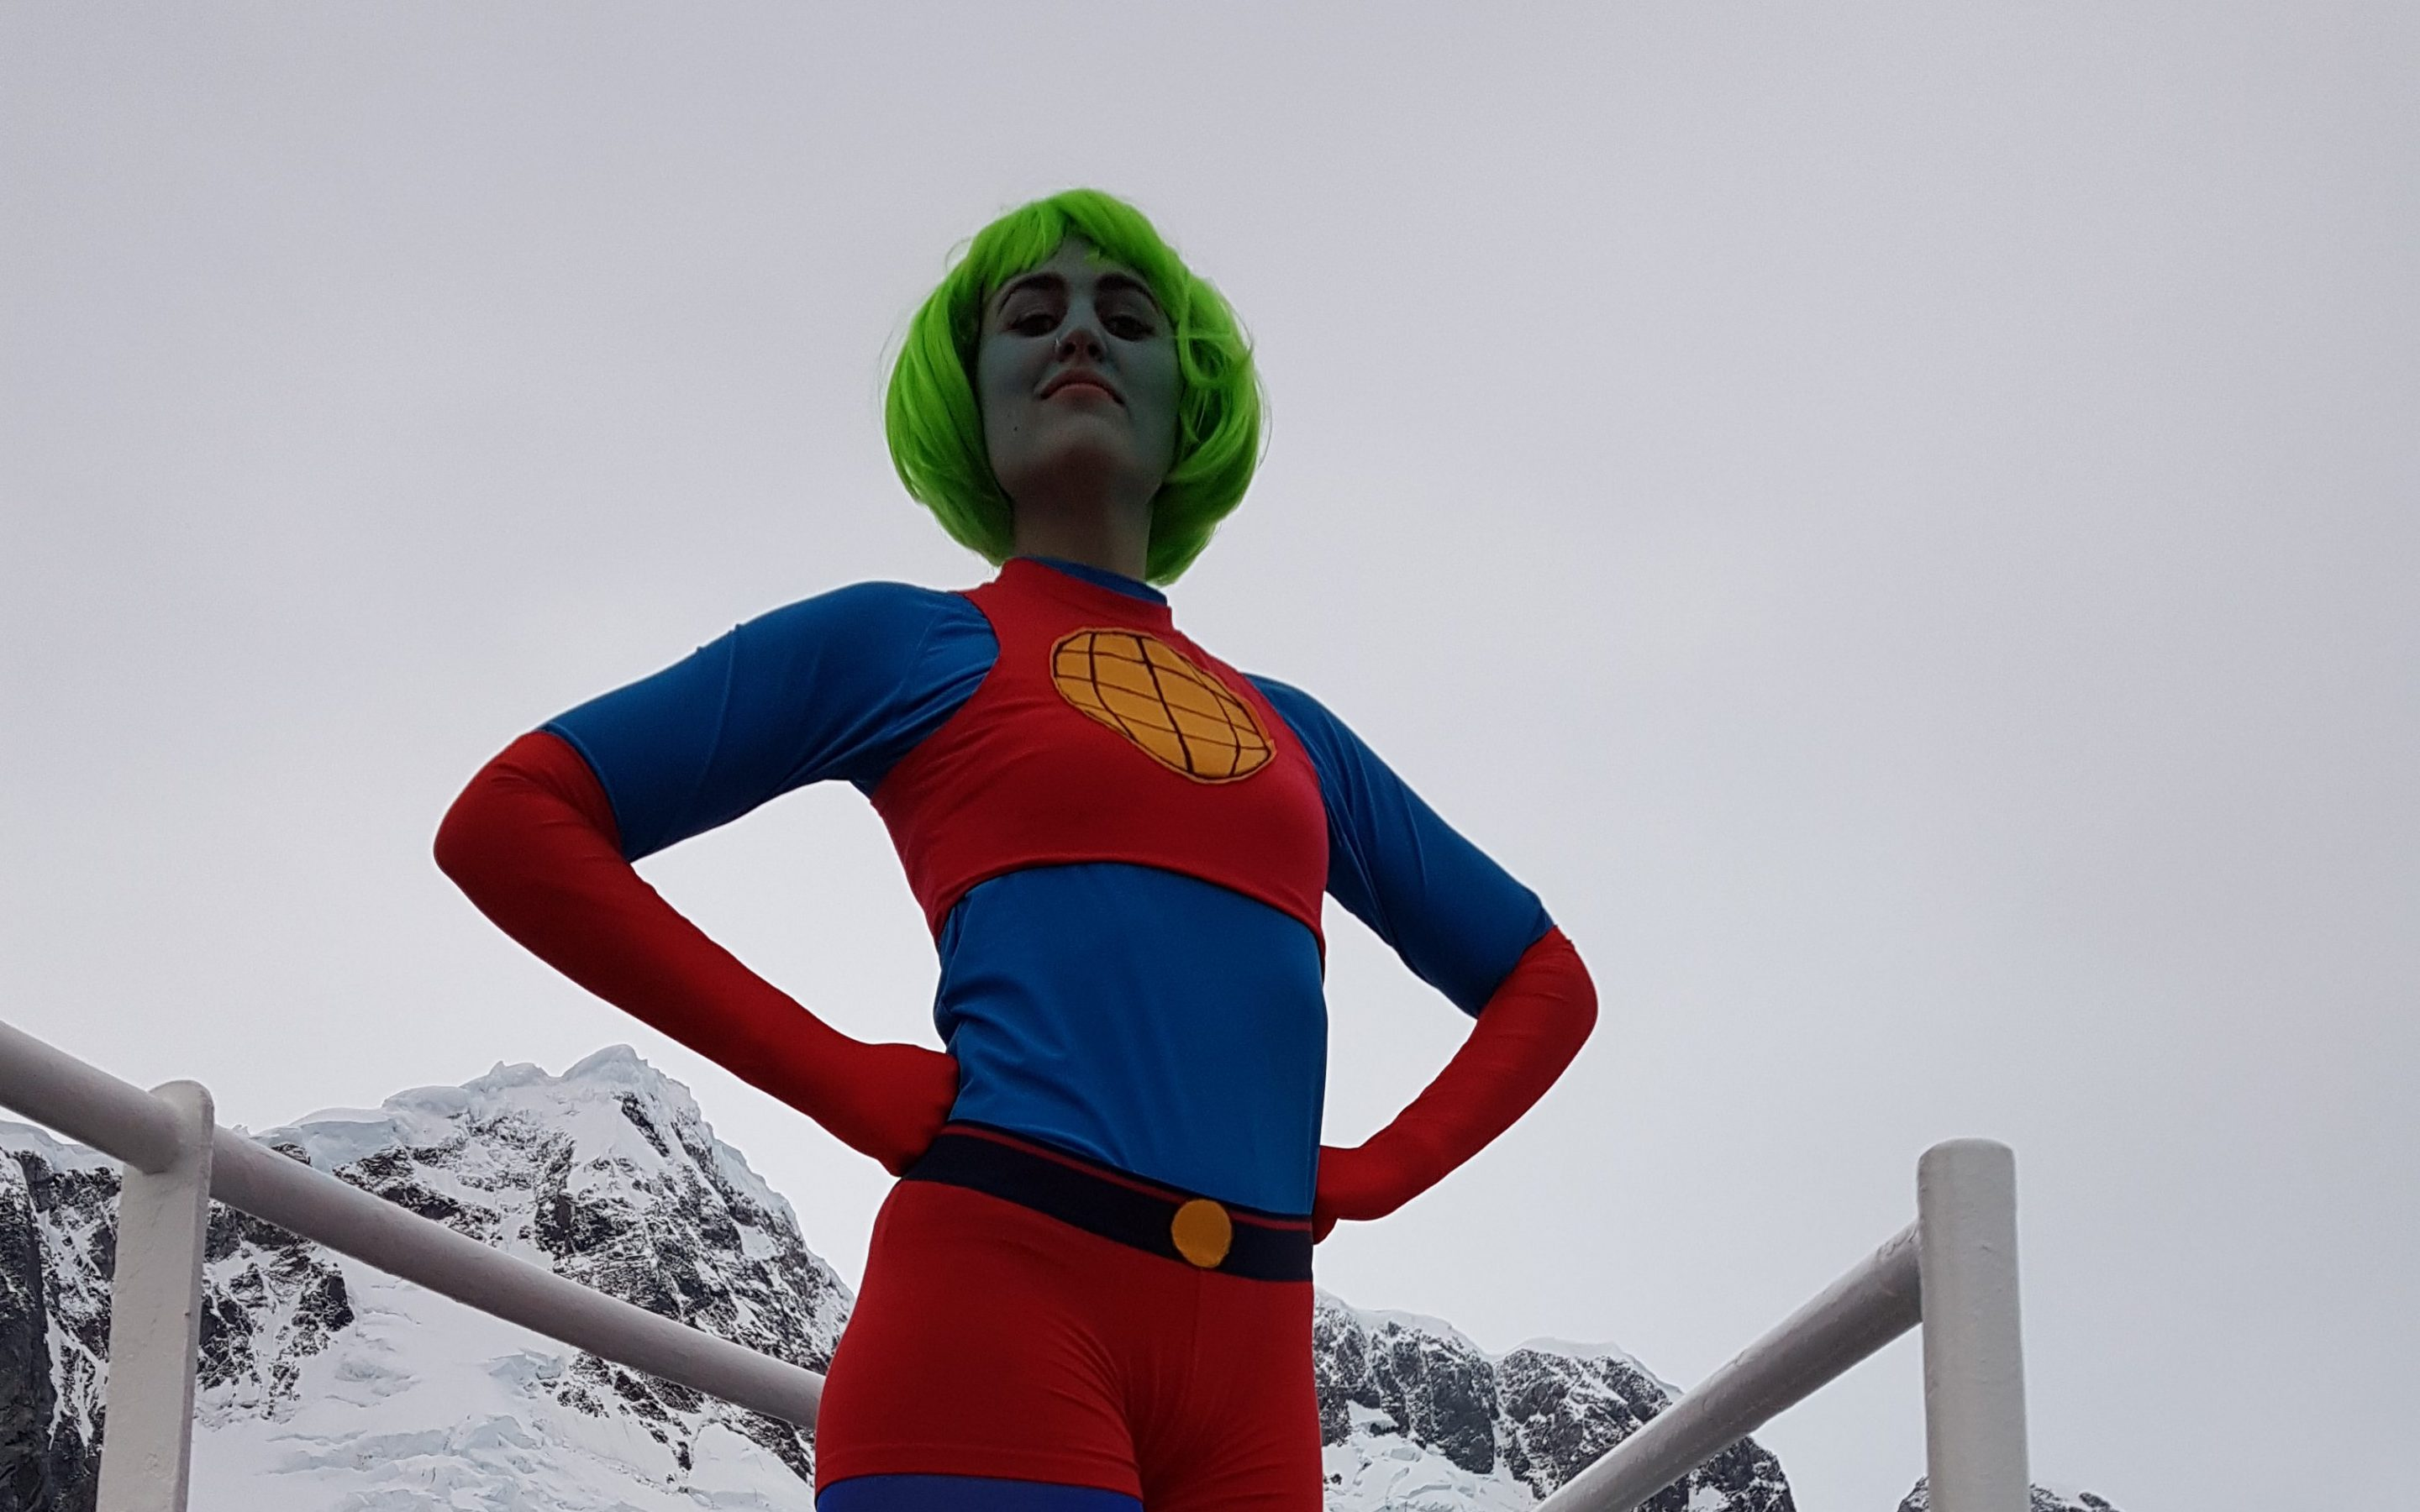 FEMALE SUPERHEROS OF SCIENCE IN ANTARCTICA: #TEAMHB CORRESPONDENT LEE CONSTABLE